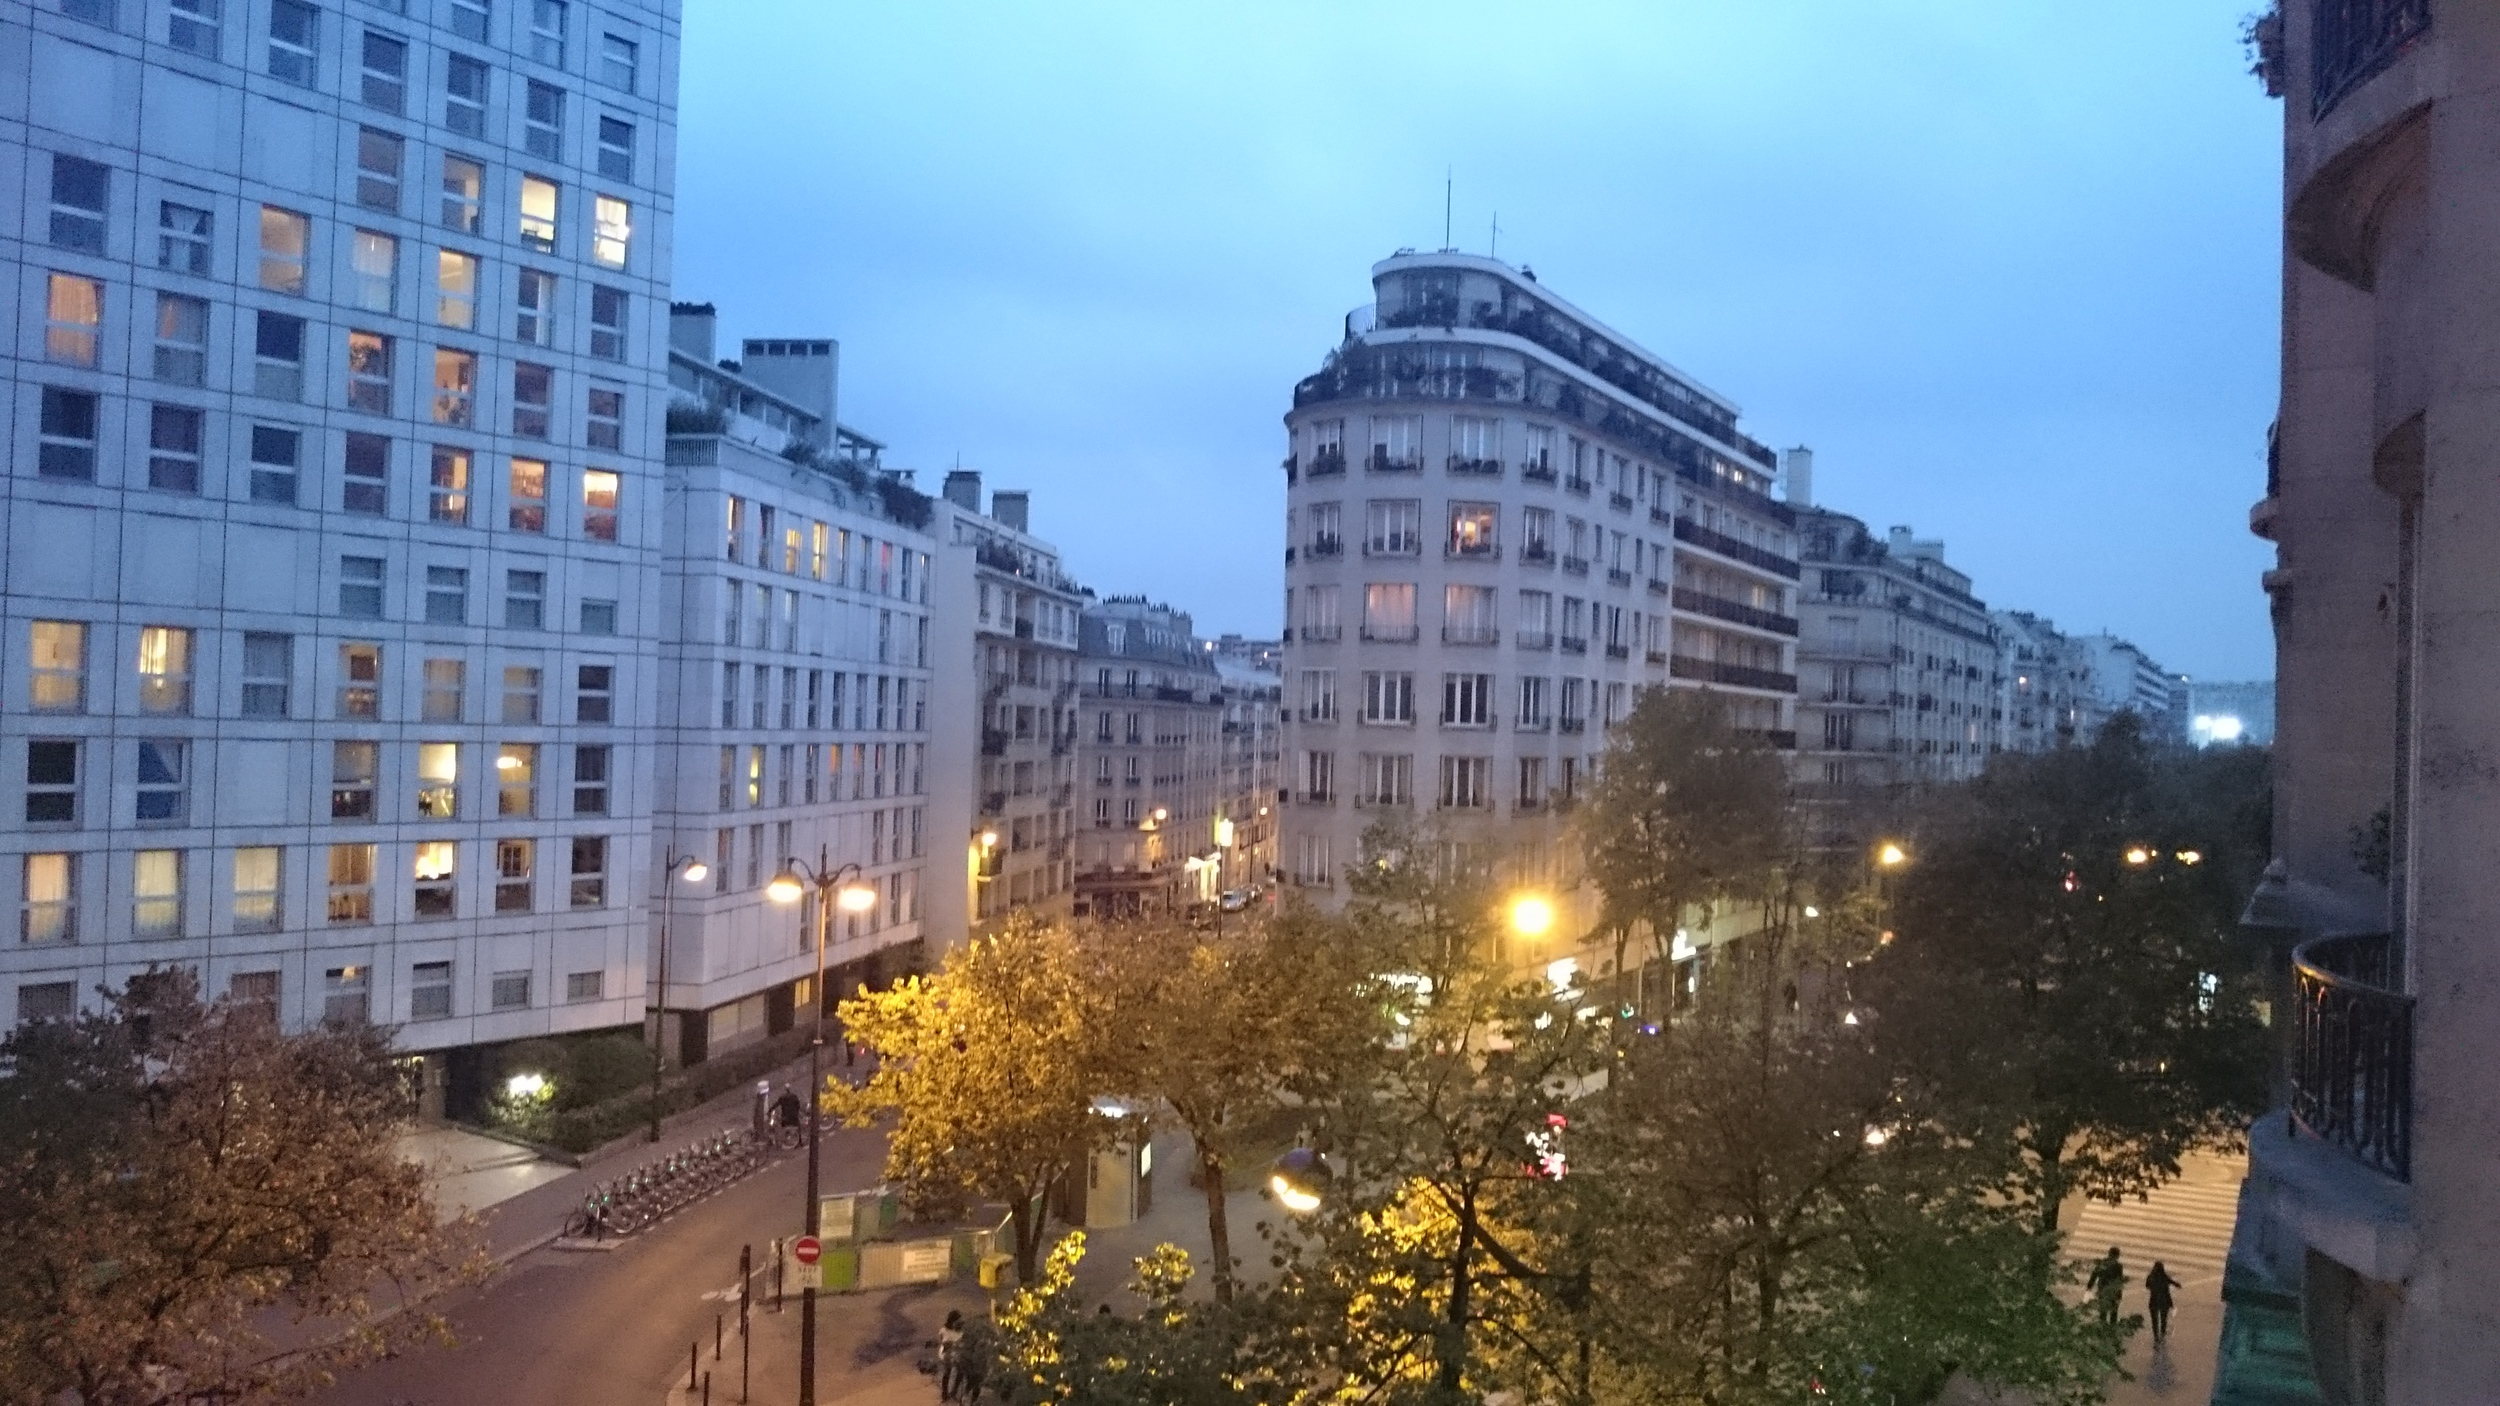 Paris! Our view from our AirBnB